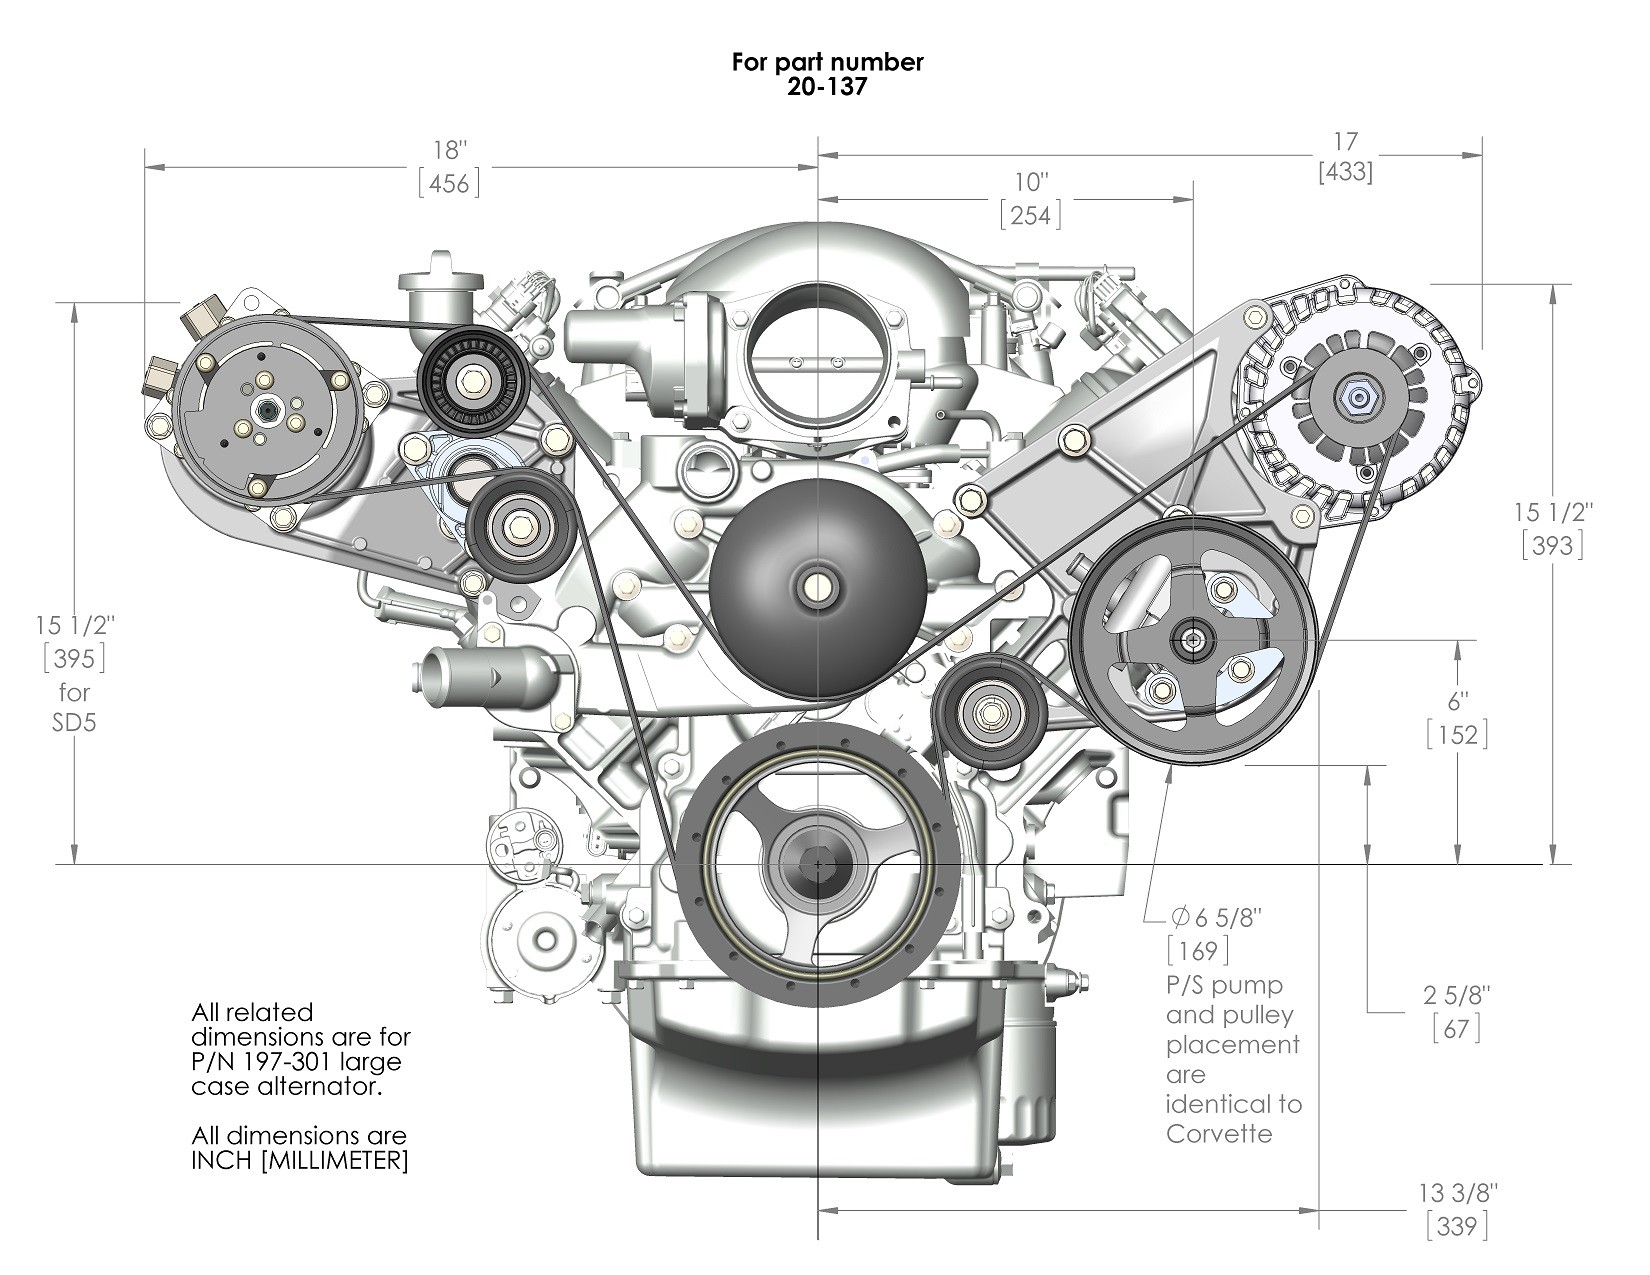 Car Undercarriage Diagram 20 137 Dimensions1 1650—1275 Ls Engines Pinterest Of Car Undercarriage Diagram